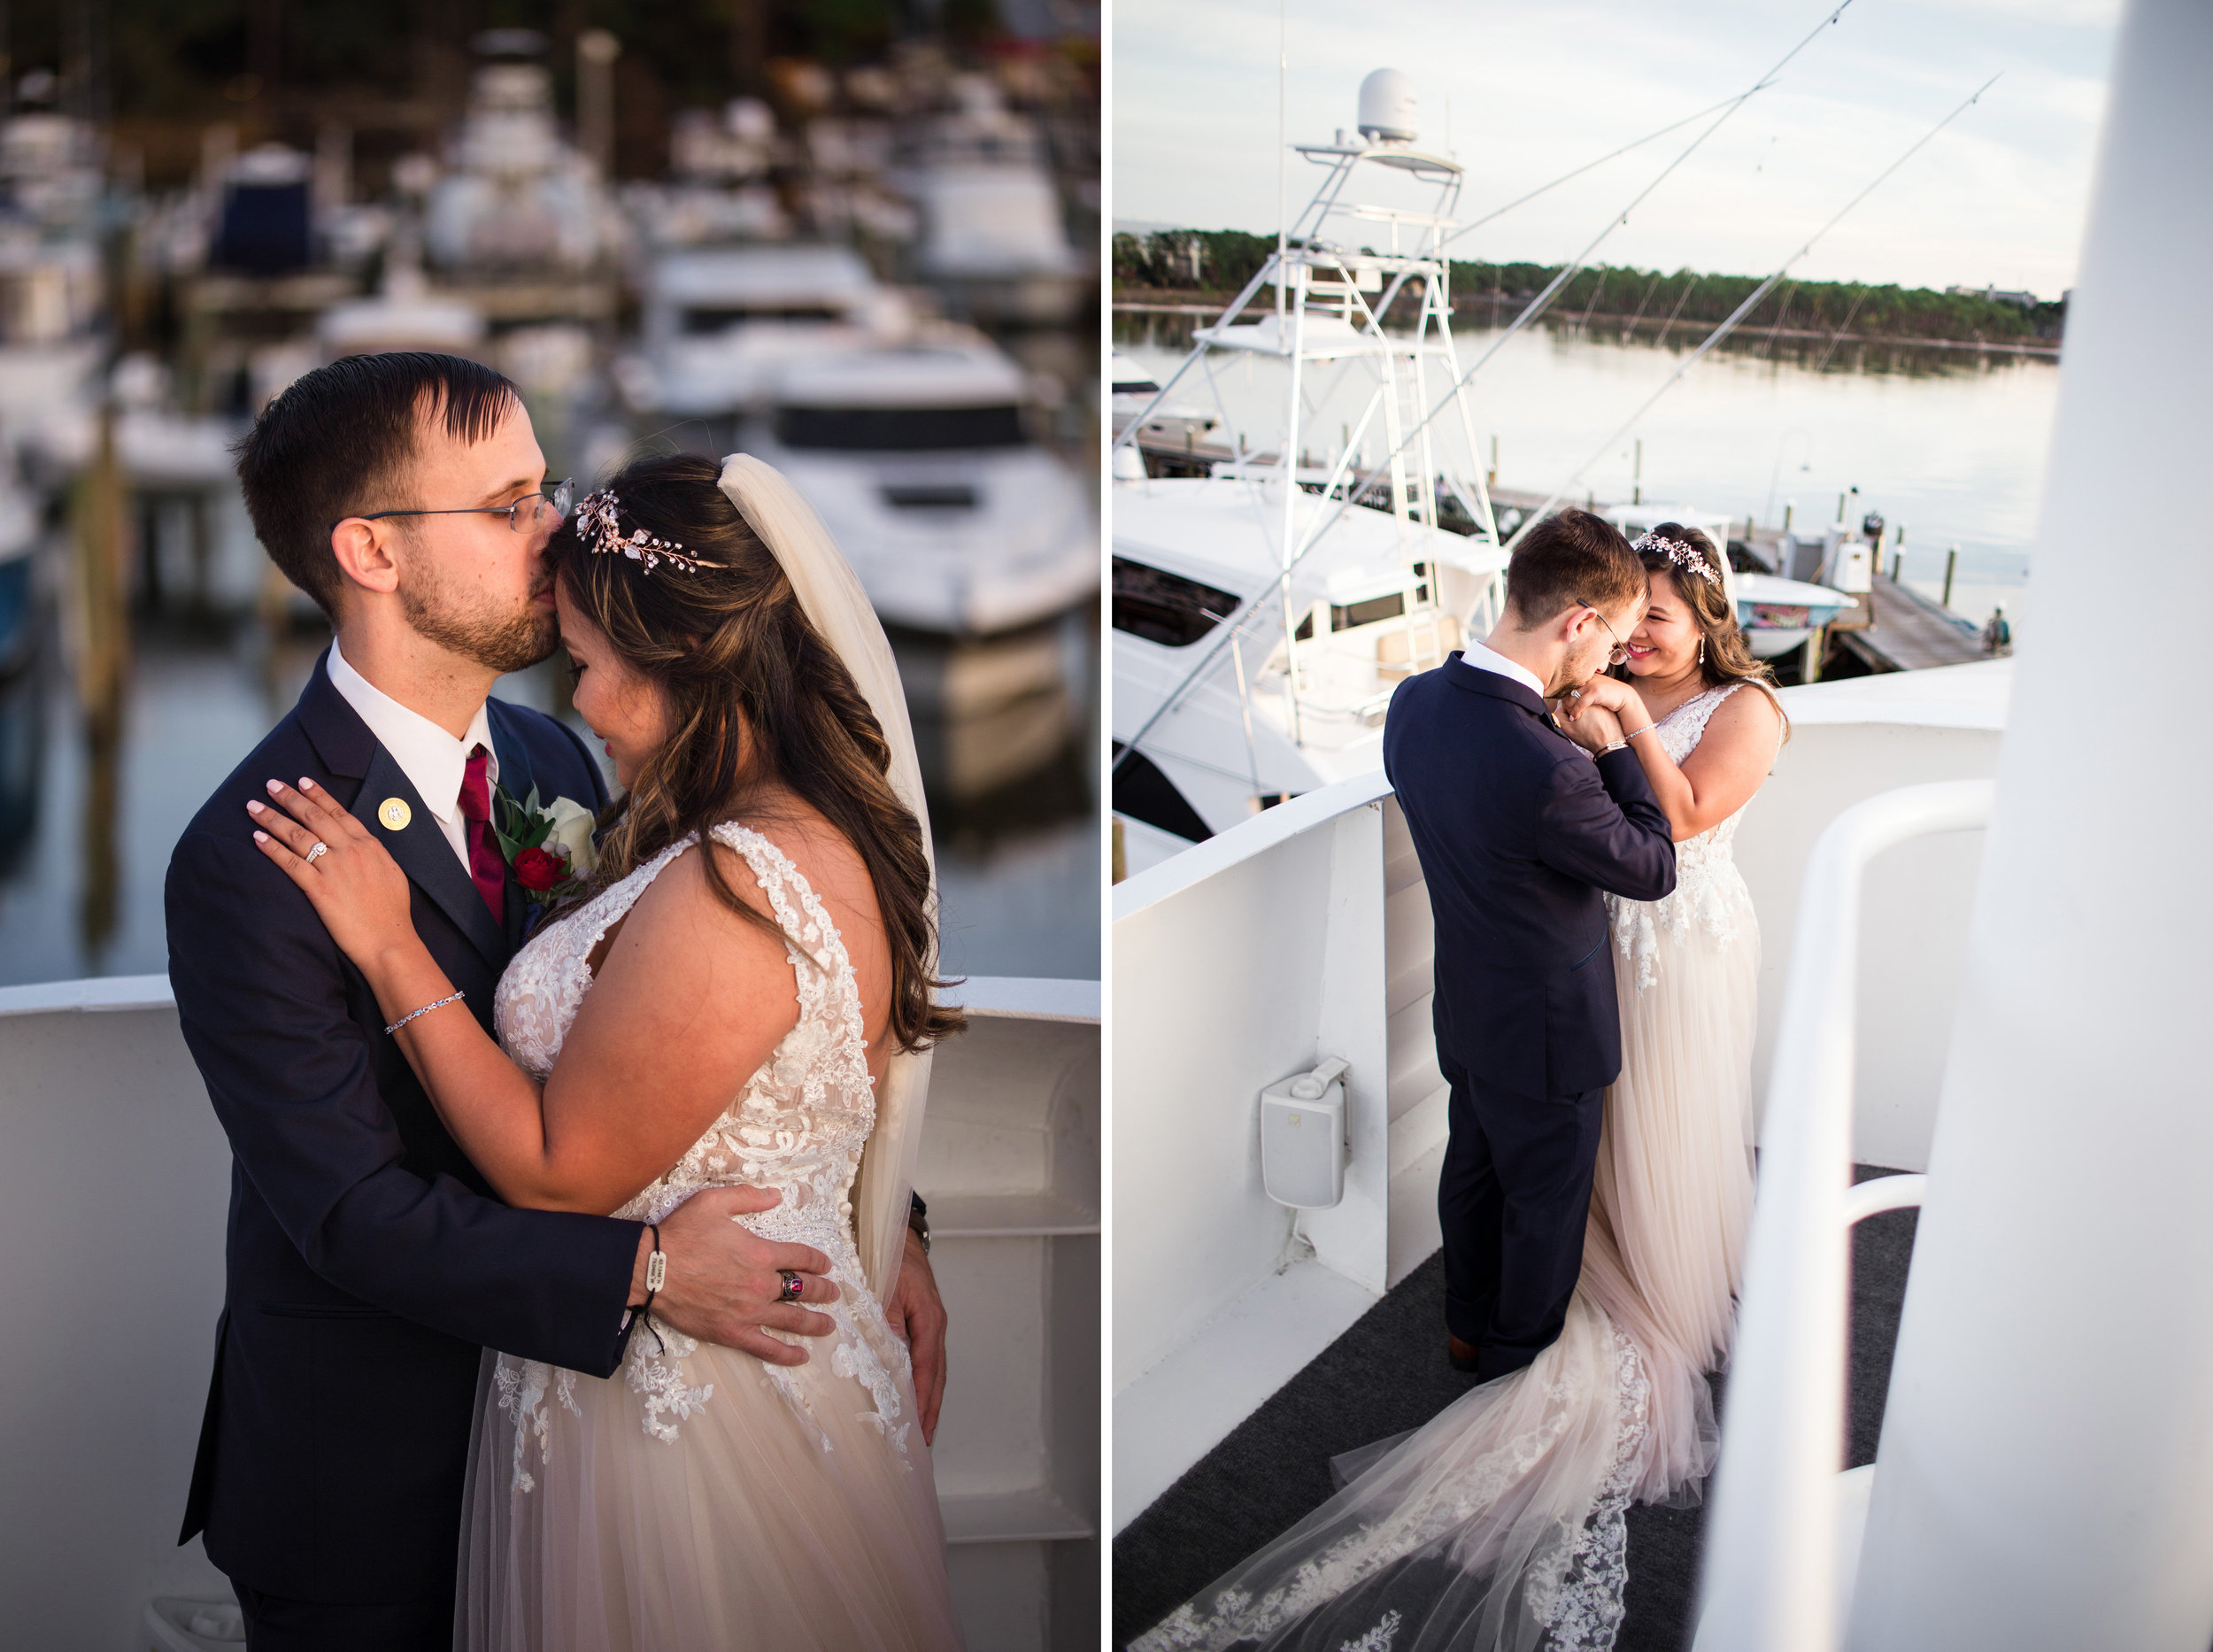 Solaris-Yacht-Destin-Florida-Wedding-Photography-Jerica-Chad-24.jpg